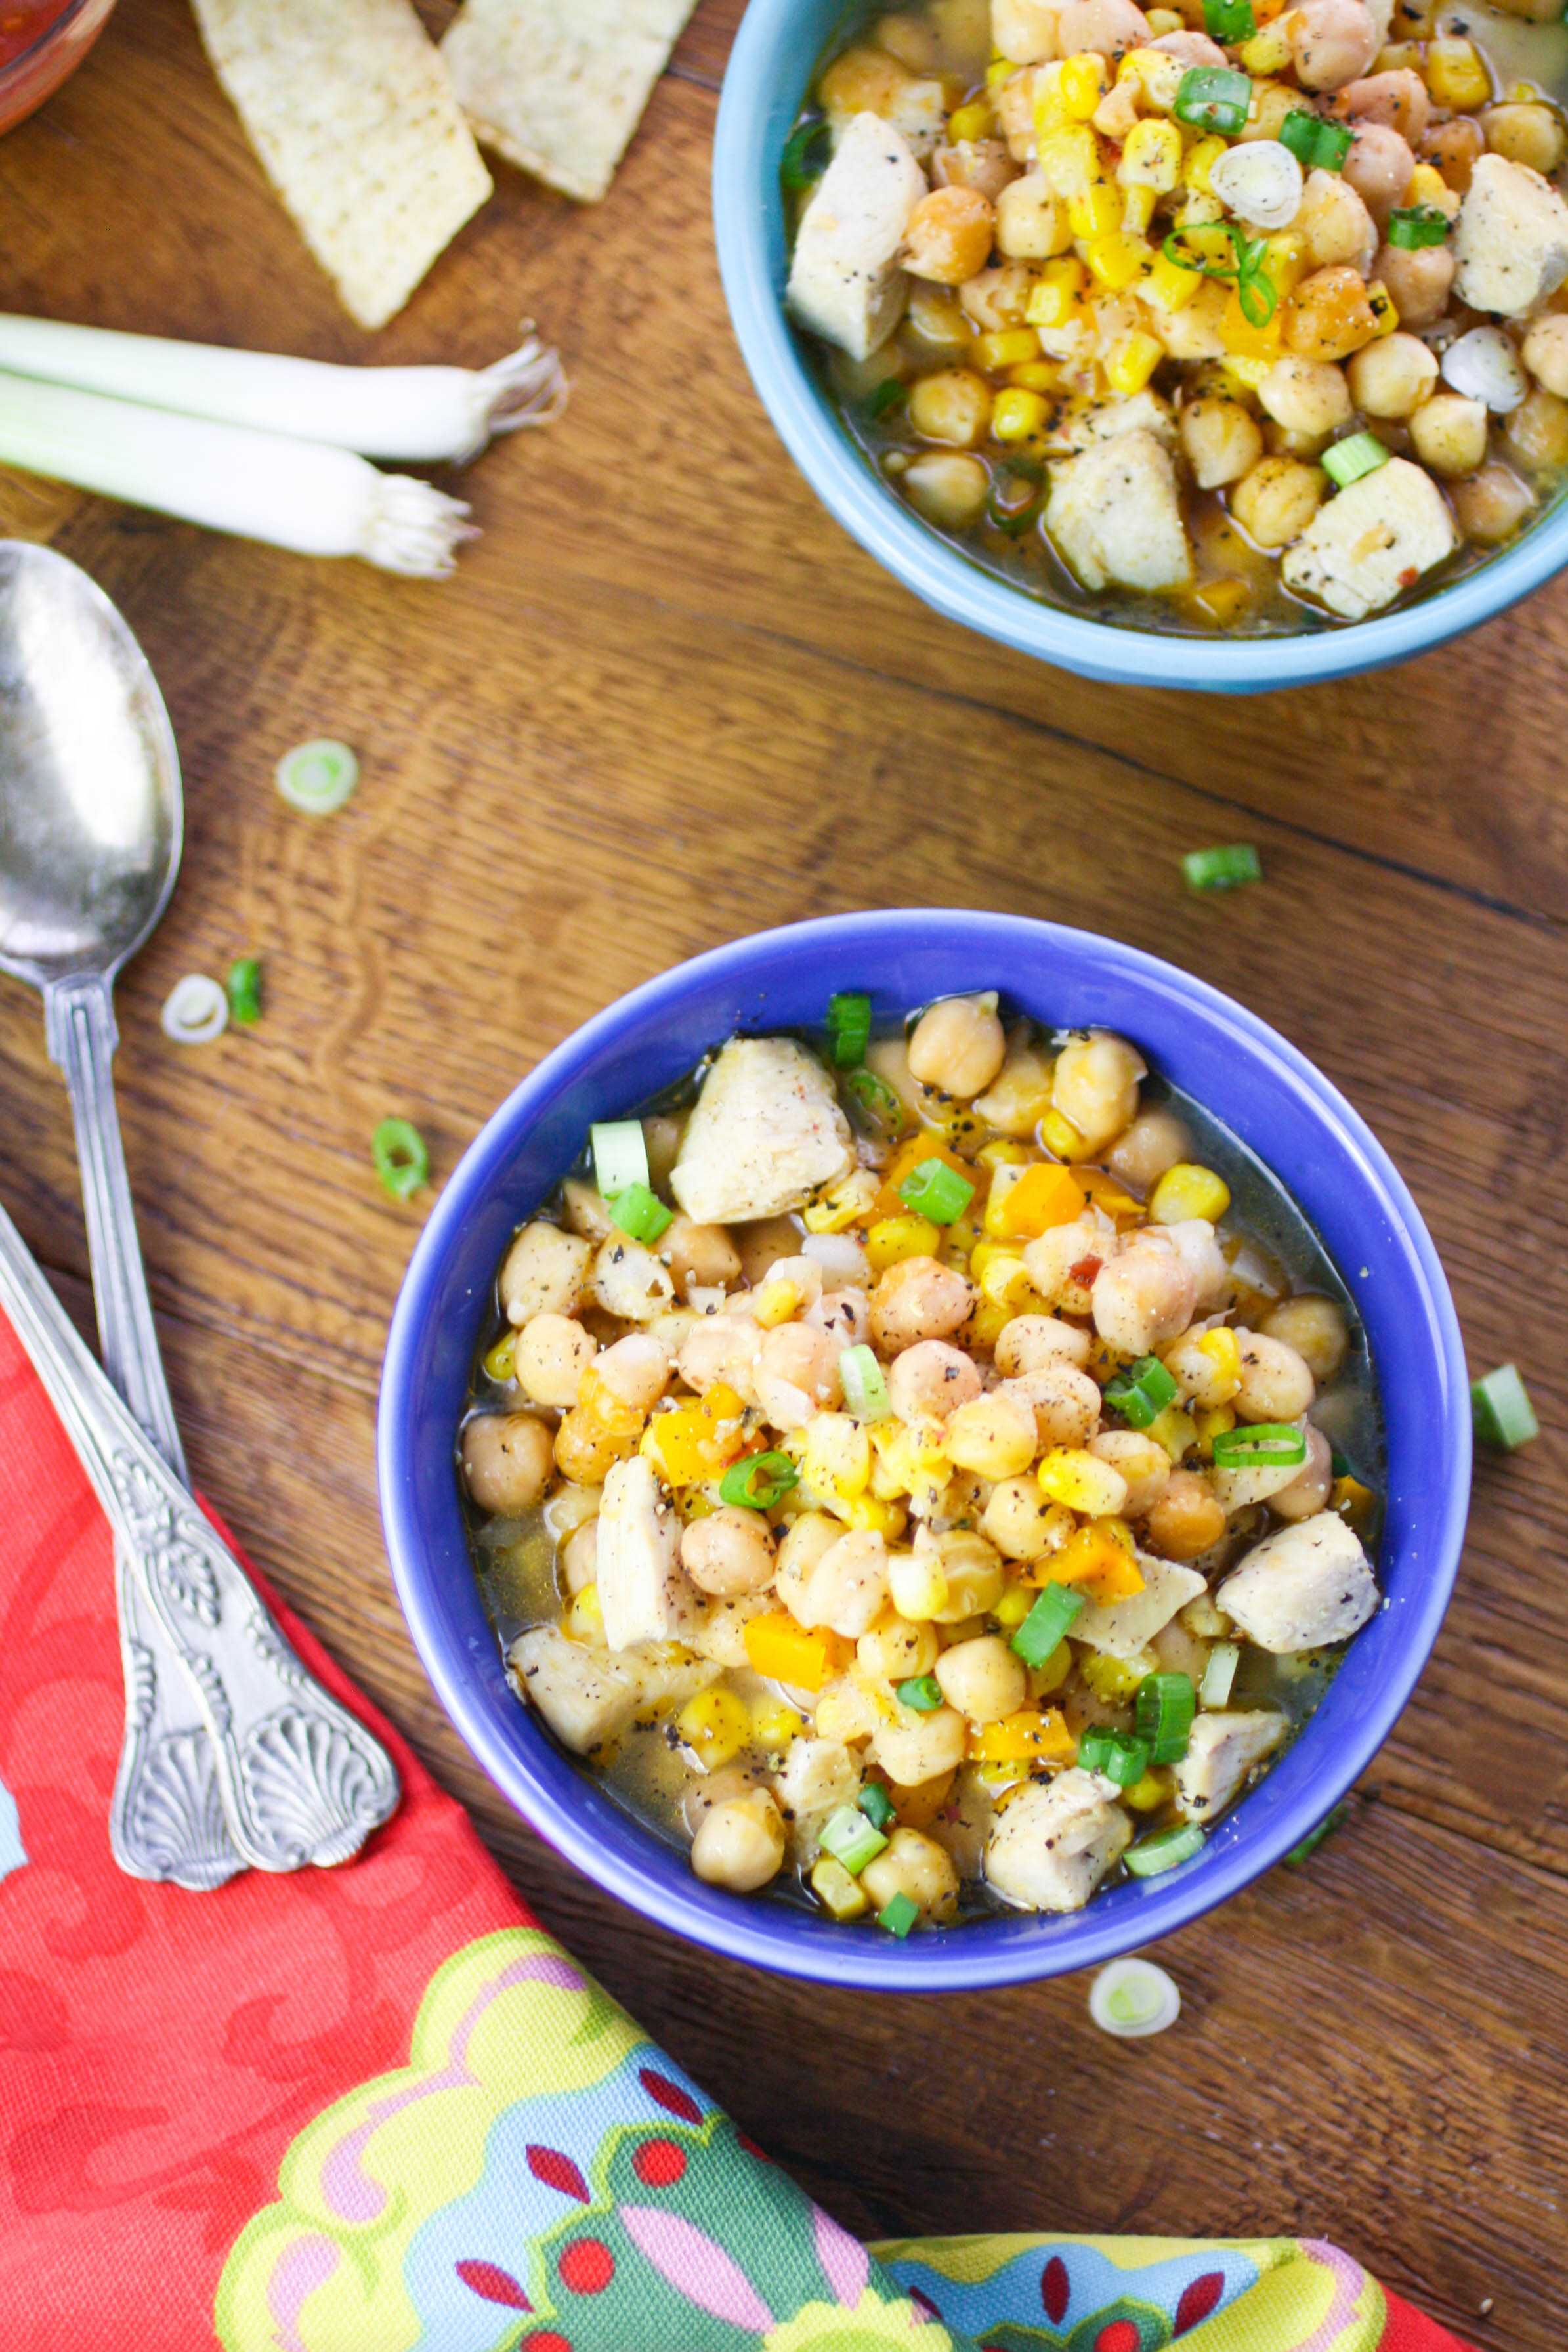 Easy Chicken and Chickpea Chili is a lovely dish any night of the week. This chili is perfect when it's cold outdoors!